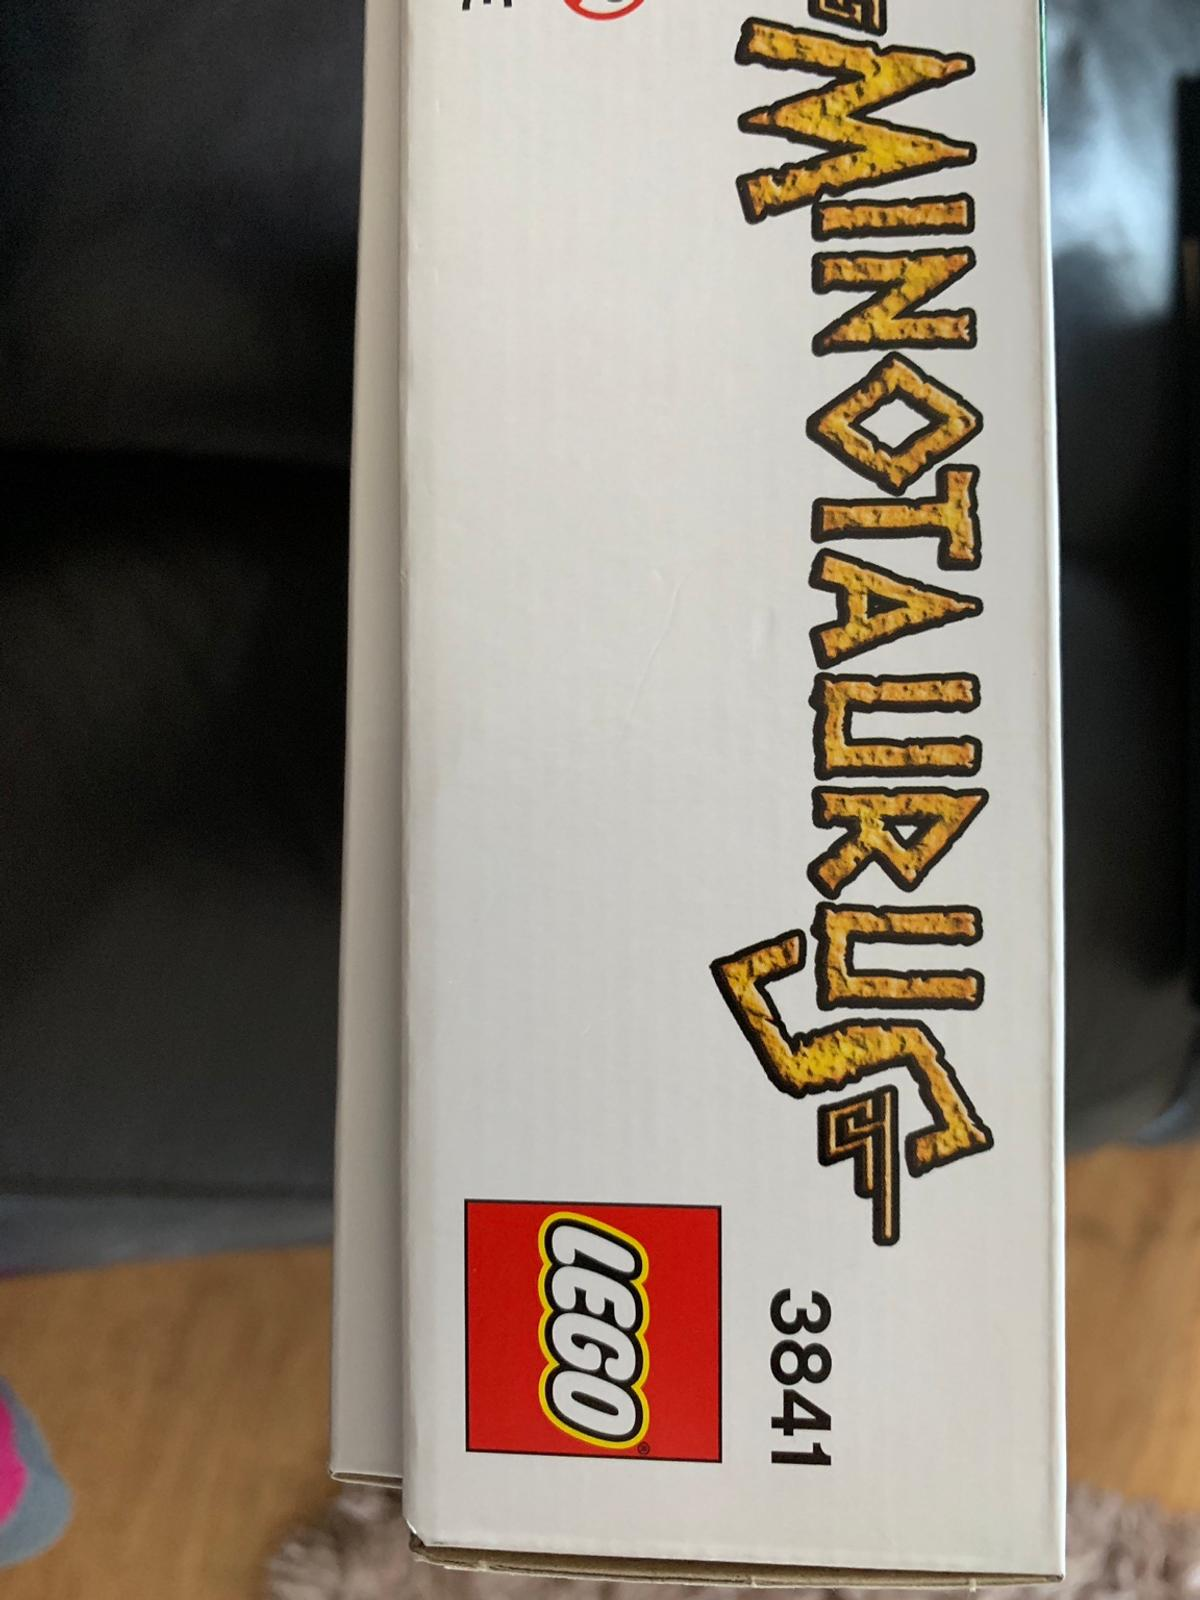 Lego minotaurus reference 3841 board game with all pieces and instructions attached. Suitable for 7+ ages In very good condition and new would cost £29.99 Would accept £15 collect If posted then please add £5 p&p